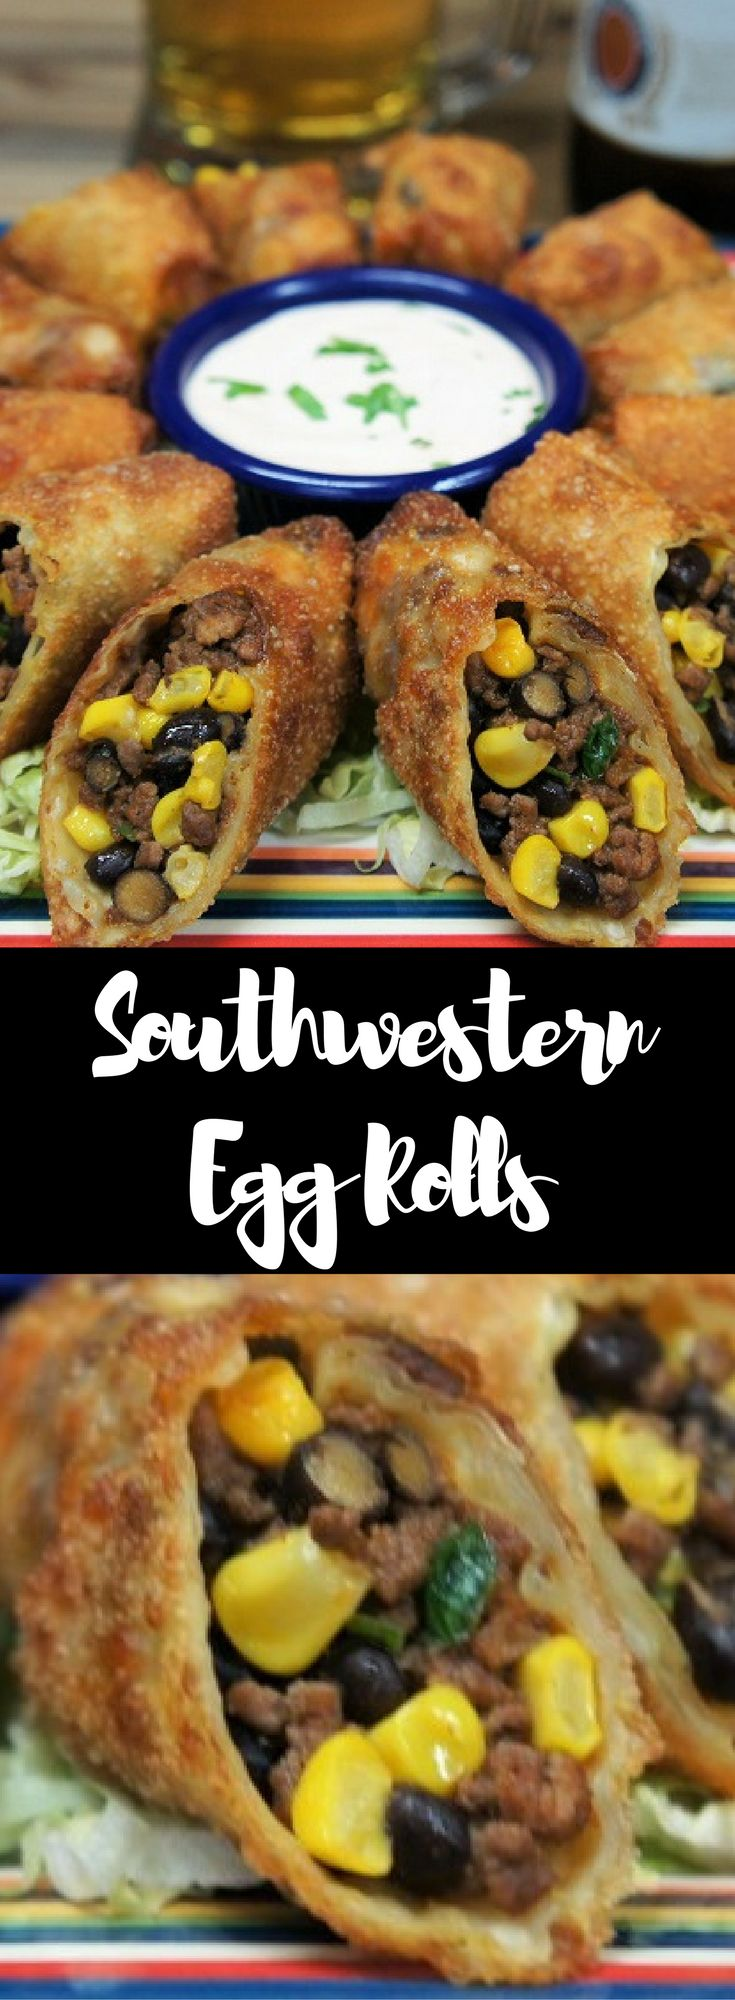 Filled with seasoned ground beef, black beans and corn, these Southwestern Egg Rolls are super flavorful and really easy to make. The filling comes together quickly and we take some help from the market by purchasing the egg roll wrappers. Making the egg rolls is pretty easy too, after rolling two or three, you'll be a pro. These Southwestern Egg Rolls are a perfect appetizer for your game-day spread or cocktail party.